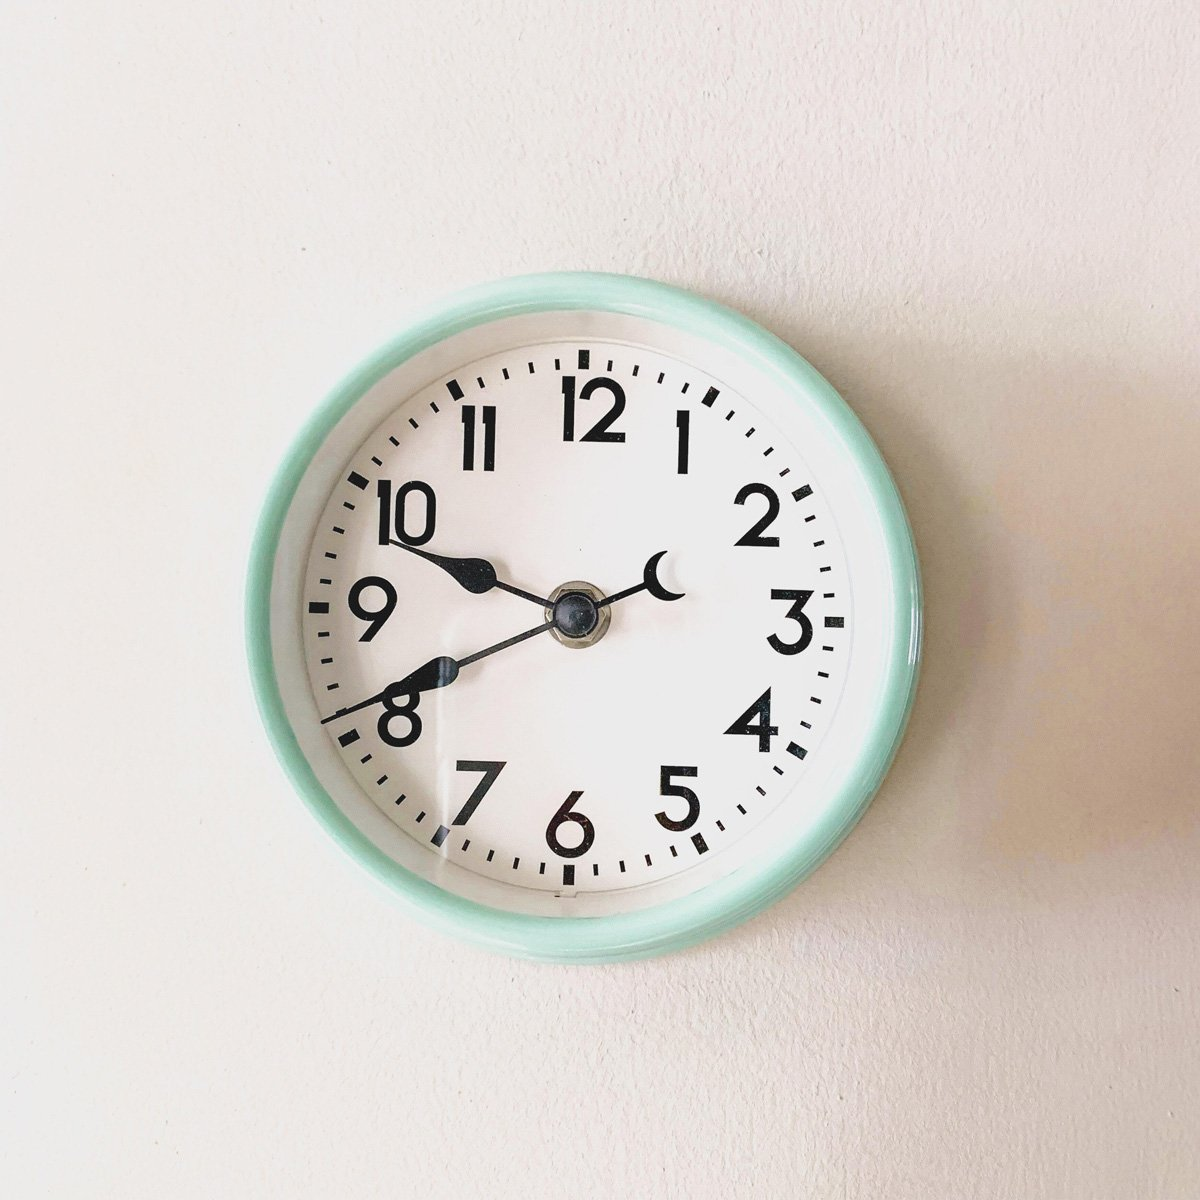 An image of an analogue clock hanging on a wall